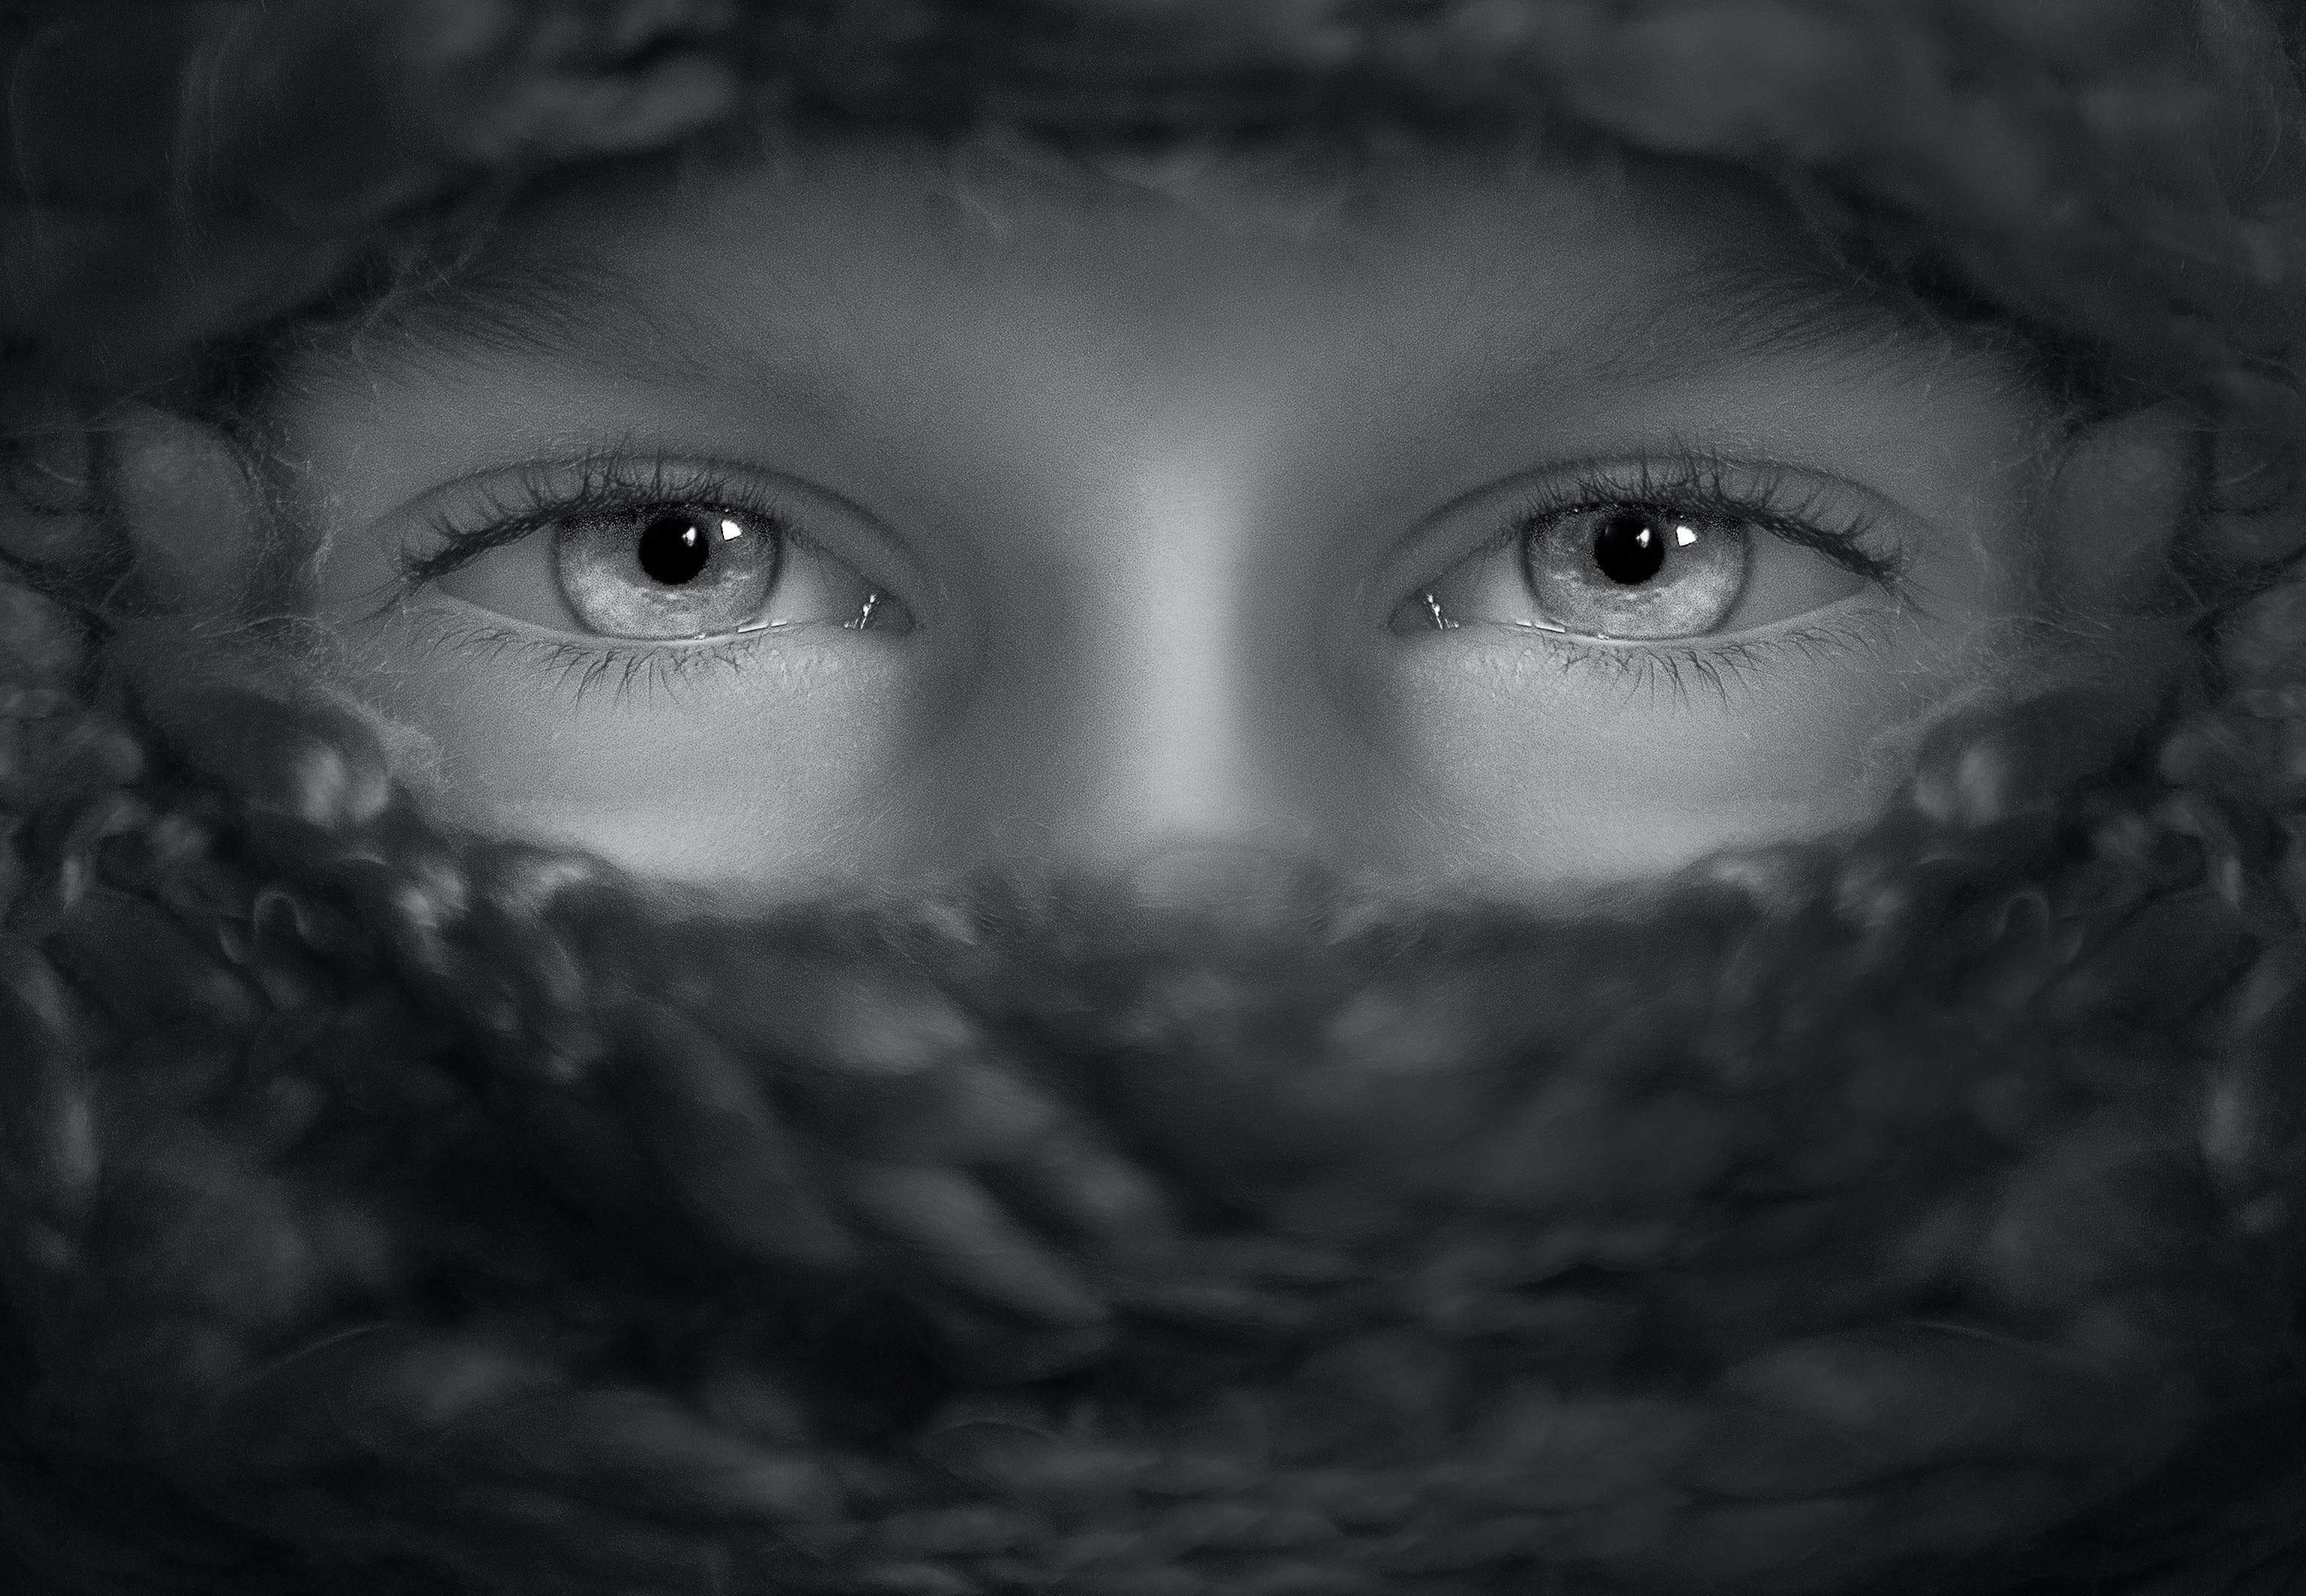 Person's Eye Grayscale Portrait Photography